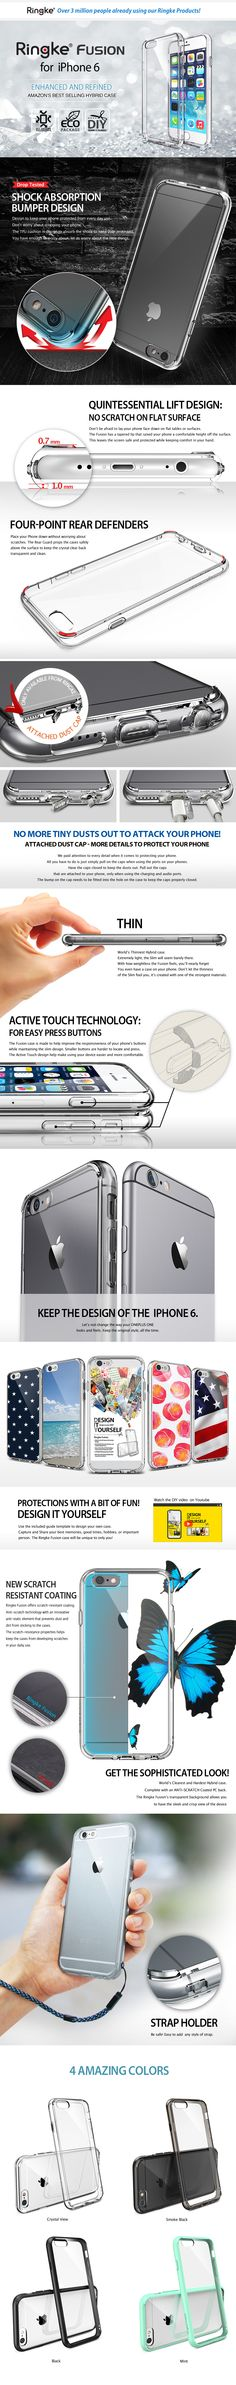 iPhone 6 Ringke clear case